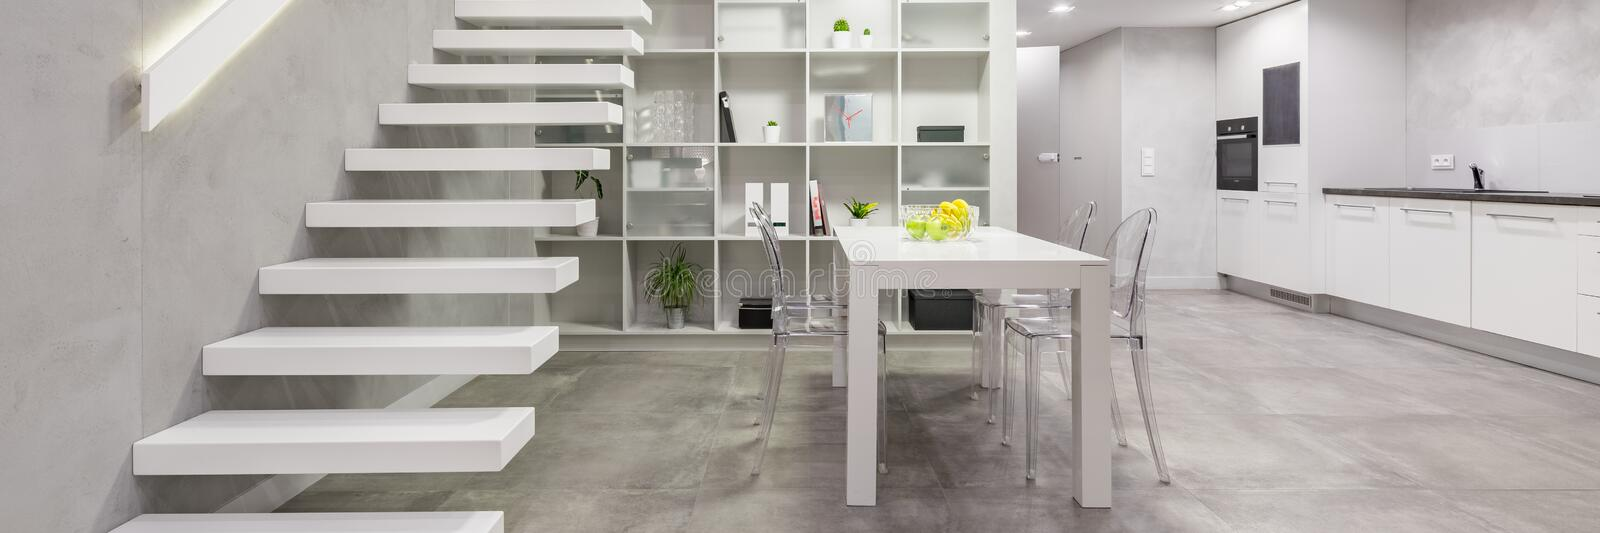 Apartment with modern white staircase. Loft apartment with modern white mezzanine staircase, dining table with chairs and open kitchen stock image